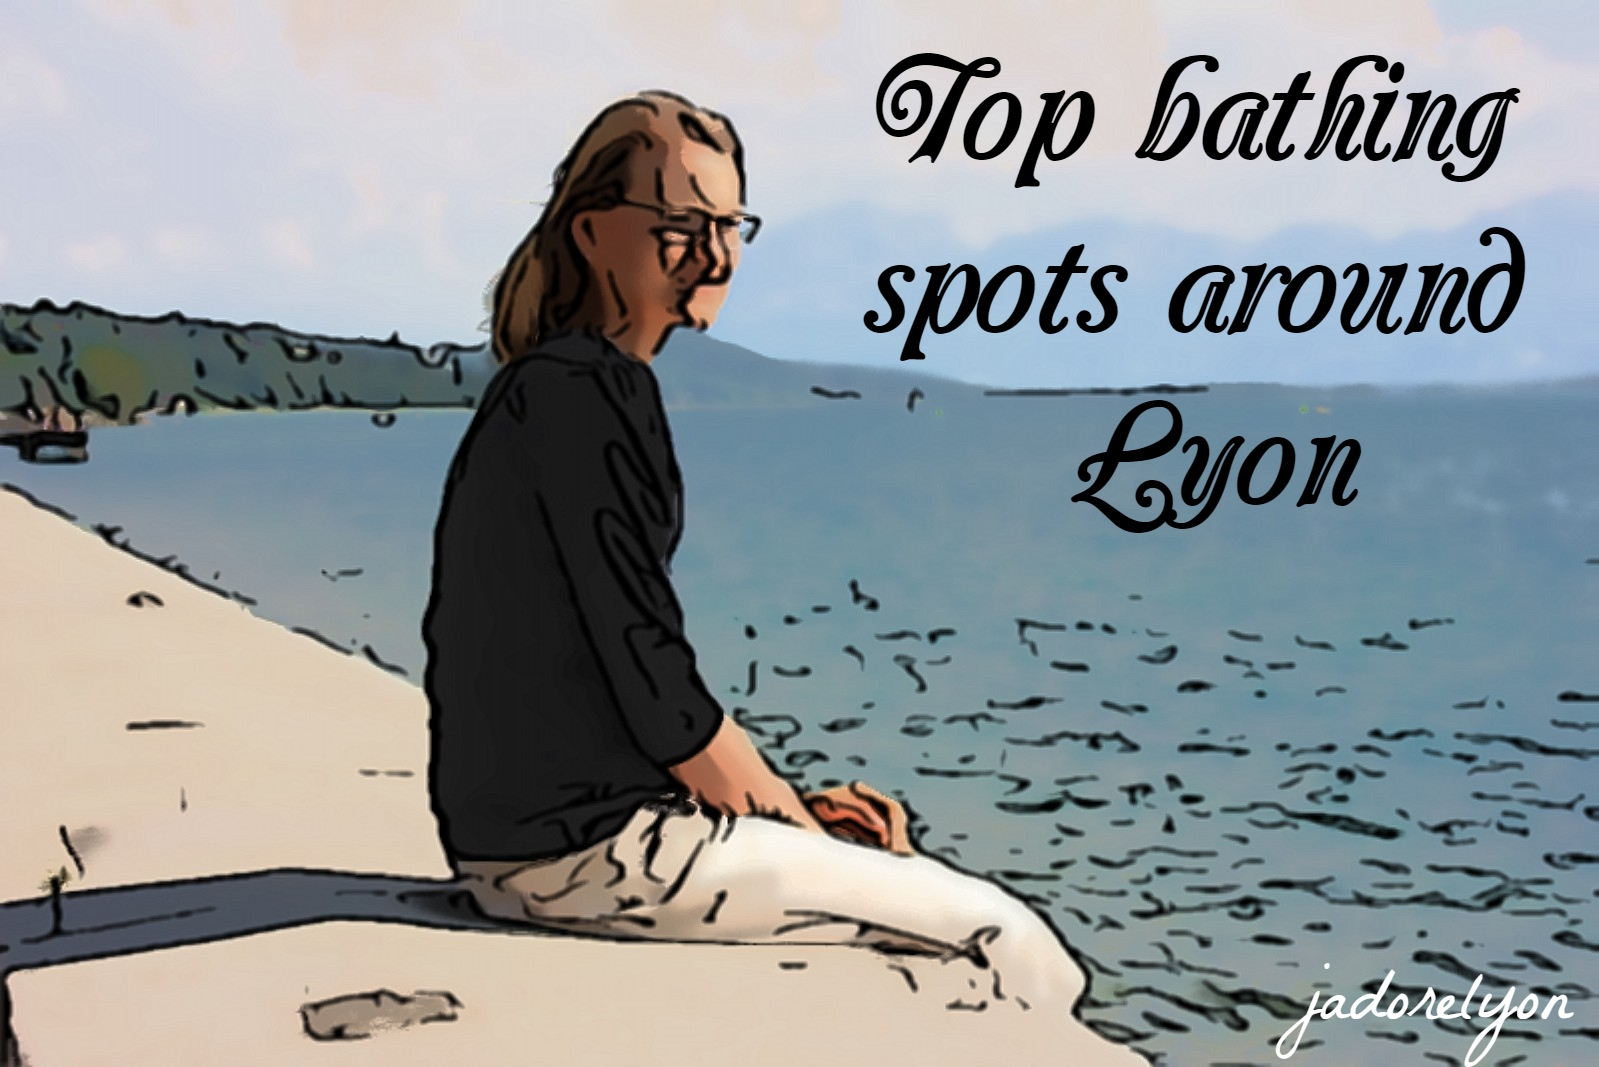 Top bathing spots around Lyon